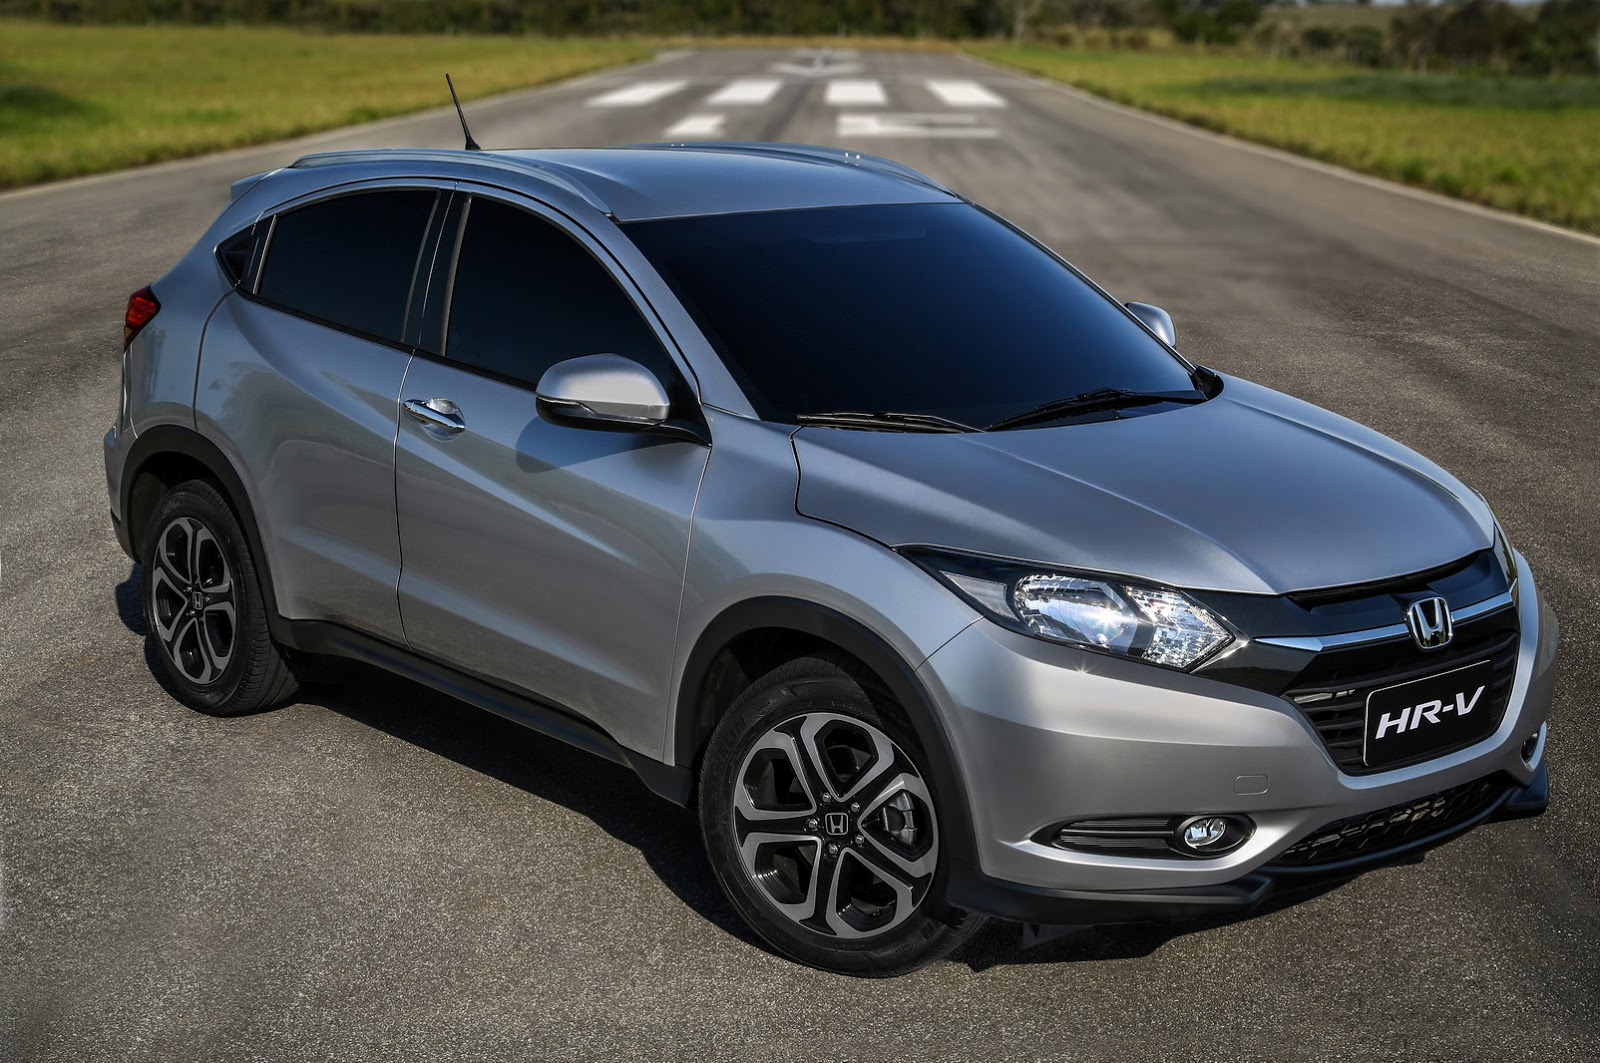 honda hr v vezel gets watered down for brazil market autoevolution. Black Bedroom Furniture Sets. Home Design Ideas